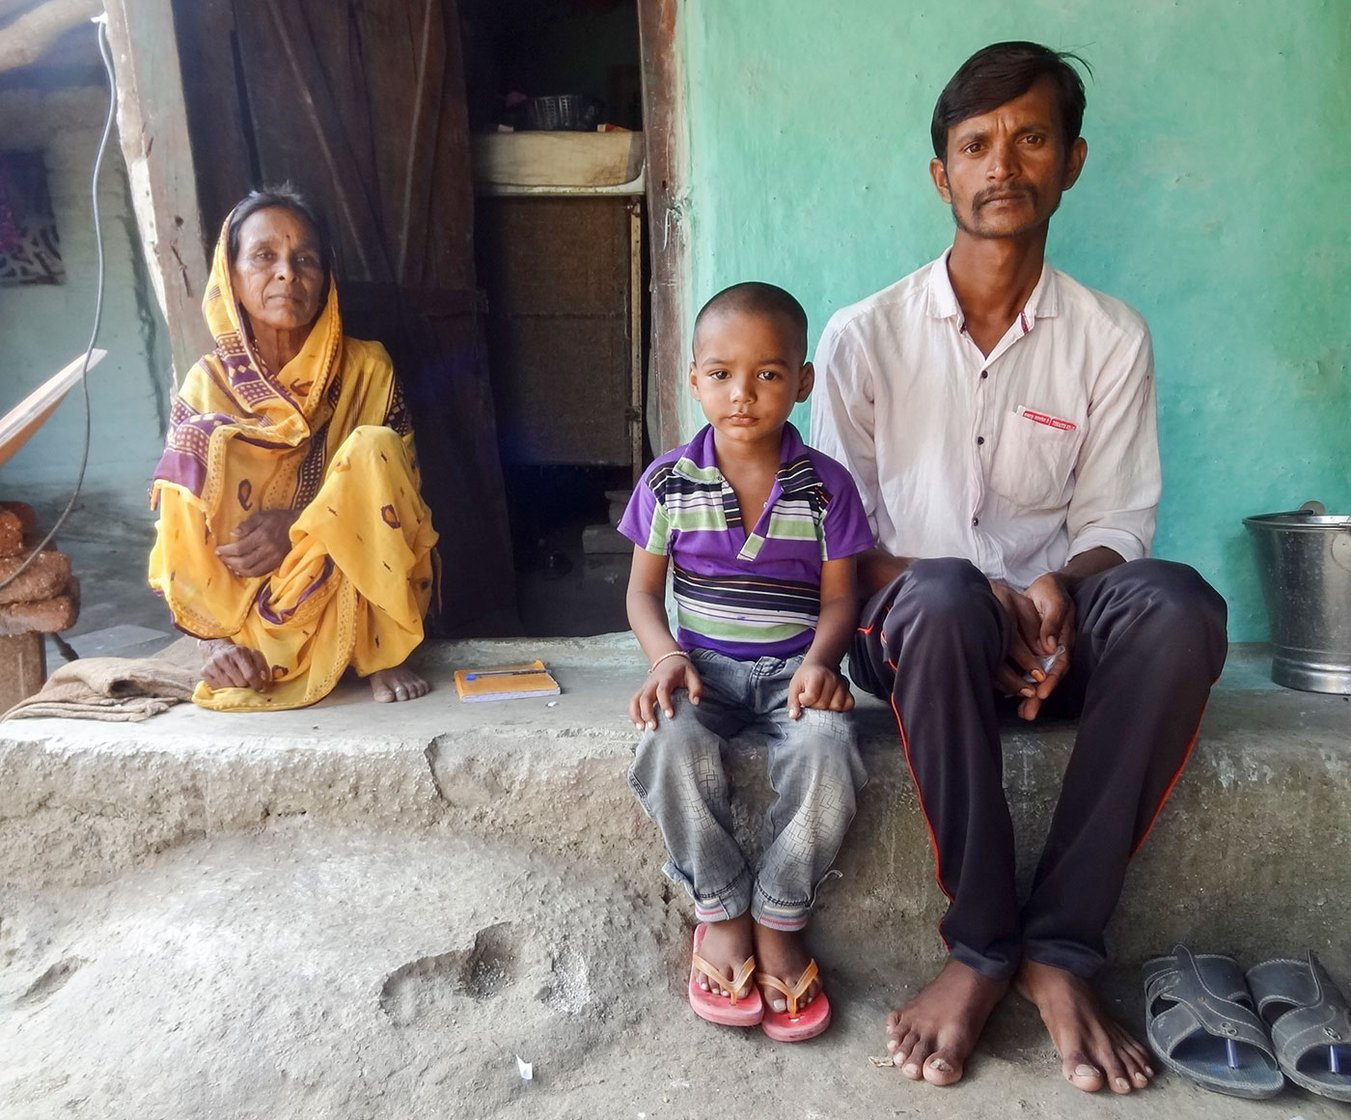 In Chahand village of Ralegaon tehsil, Archana Kulsanghe, 30, became an unusual victim in an elephant attack. The tragic story unfolded as one of the elephants deployed during Operation Avni, went berserk and fled from the base camp, only to trample two people, Archana being one of those. At her home, her husband Moreshwar sit grieving his wife's demise, as his younger son Nachiket, clings on to him. The elephant trampled her when Archana was collecting the cow-dung in front of her hut near the cart; the Gajraj came from behind the neighbourer's home, rammed into a toilet structure, and broke the shed built along the hut. After trampling Archana, it went to the neighbouring village of Pohana before it was reigned in. Purushottam's mother Mandabai is sitting along the door of their hut